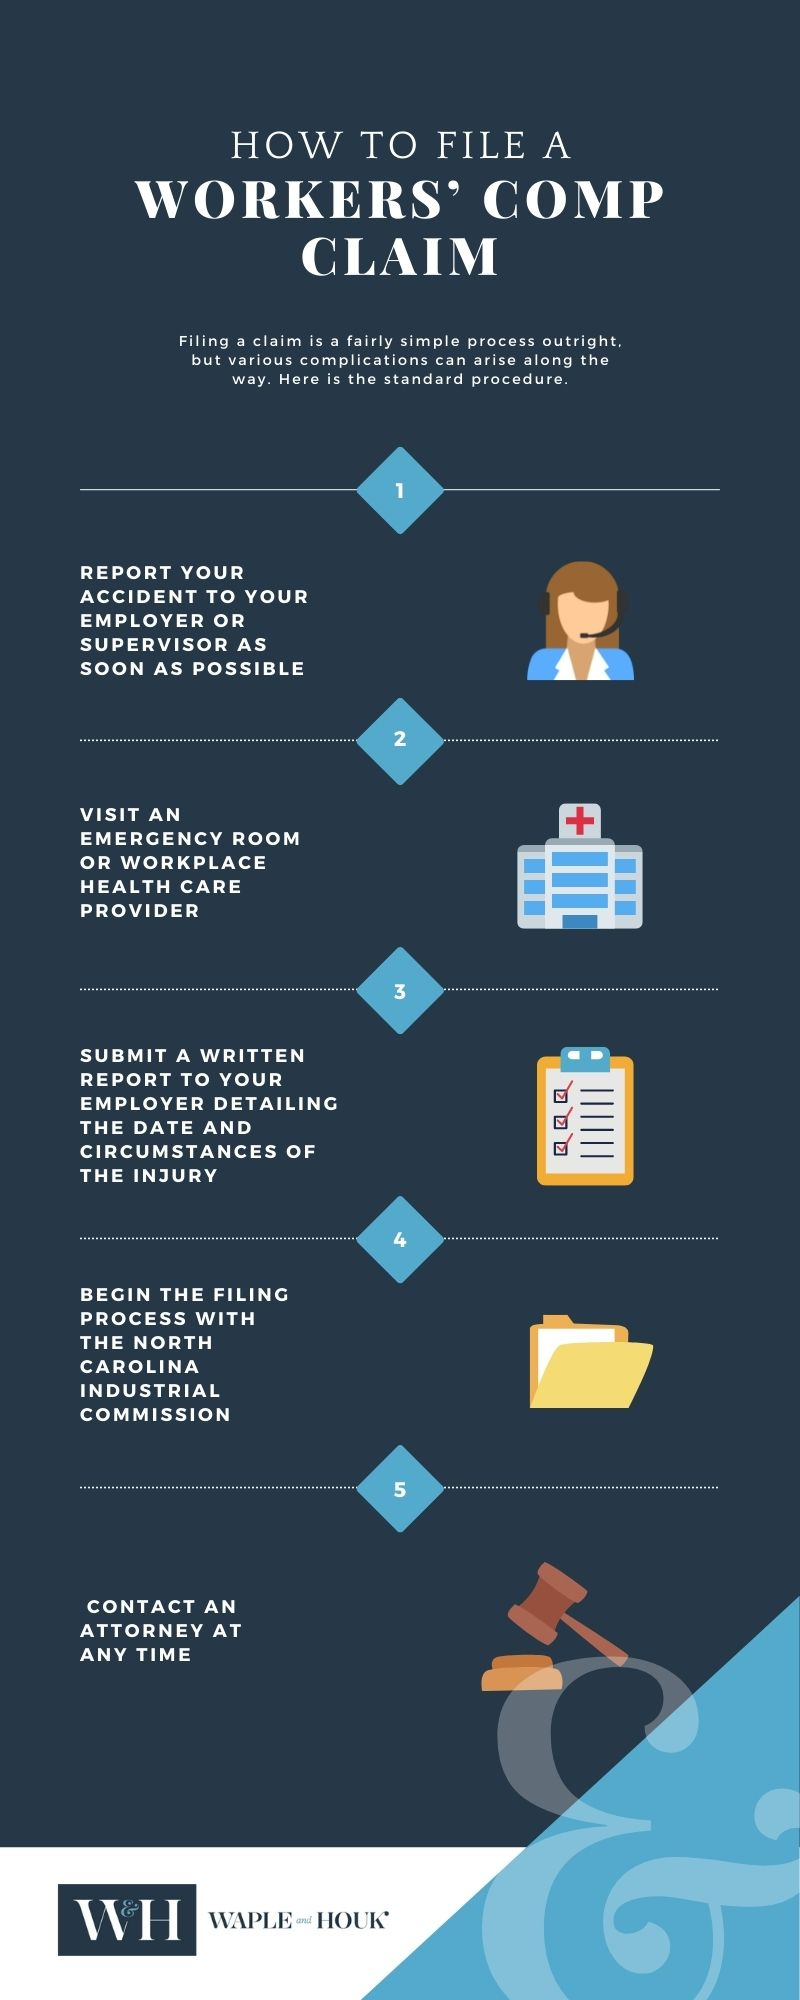 Charlotte Workers Compensation Claim Process Infographic